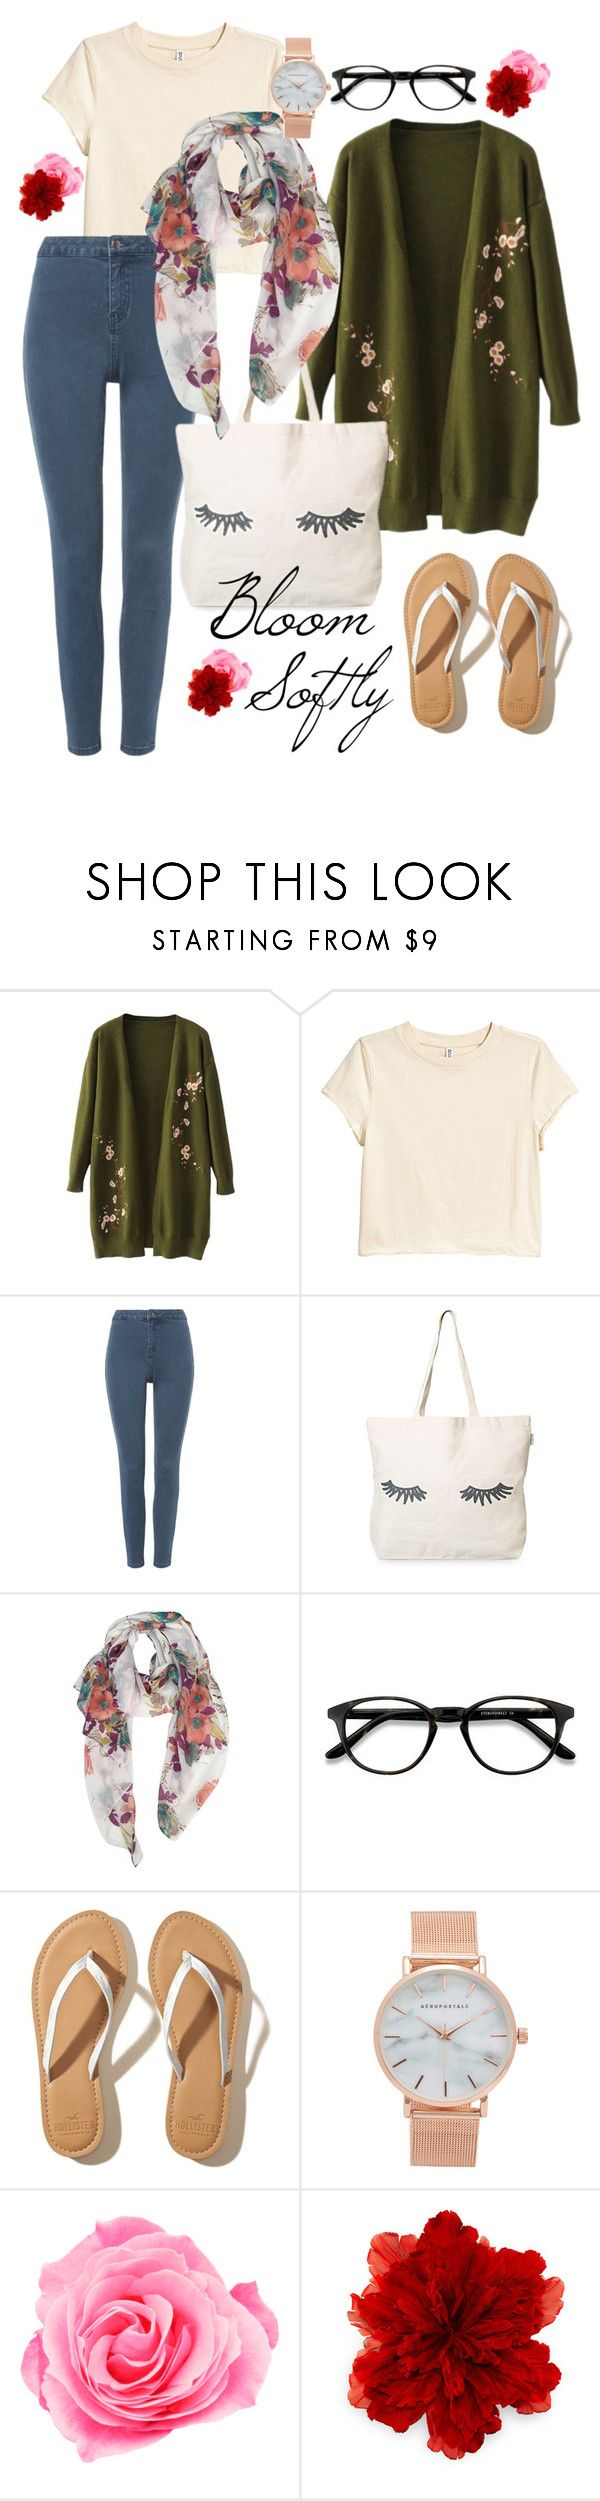 """""""Bloom Softly"""" by afifahafifa on Polyvore featuring H&M, EyeBuyDirect.com, Hollister Co., Aéropostale, Gucci, soft and flowery"""